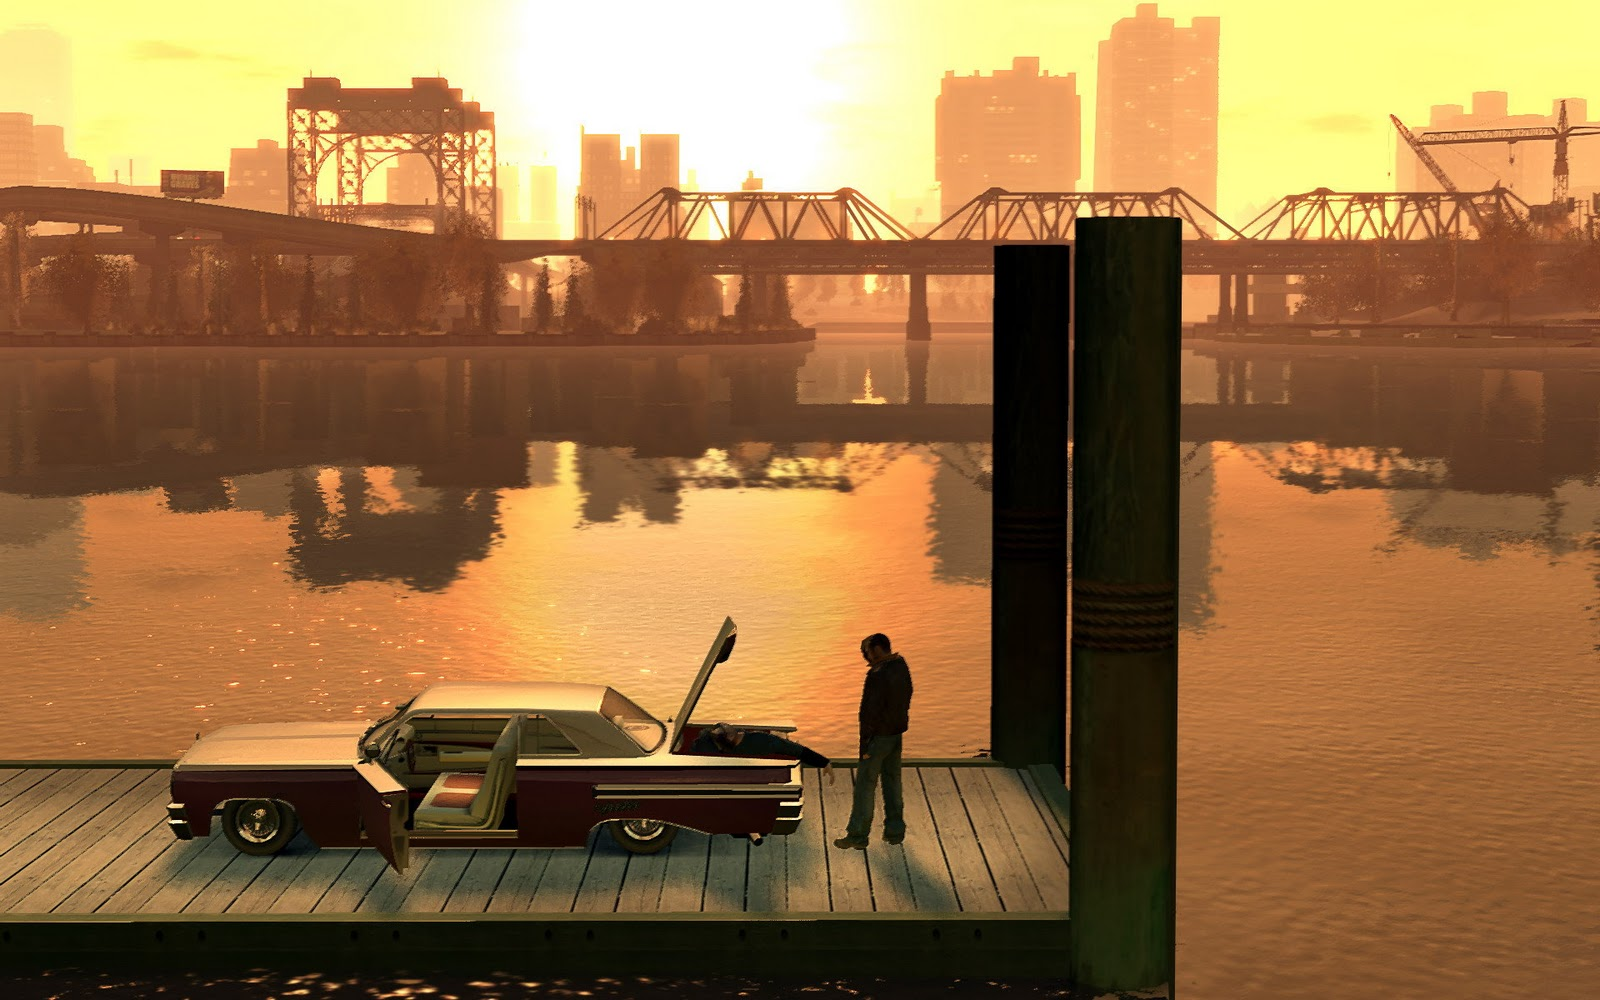 gta 4 wallpapers for pc |See To World